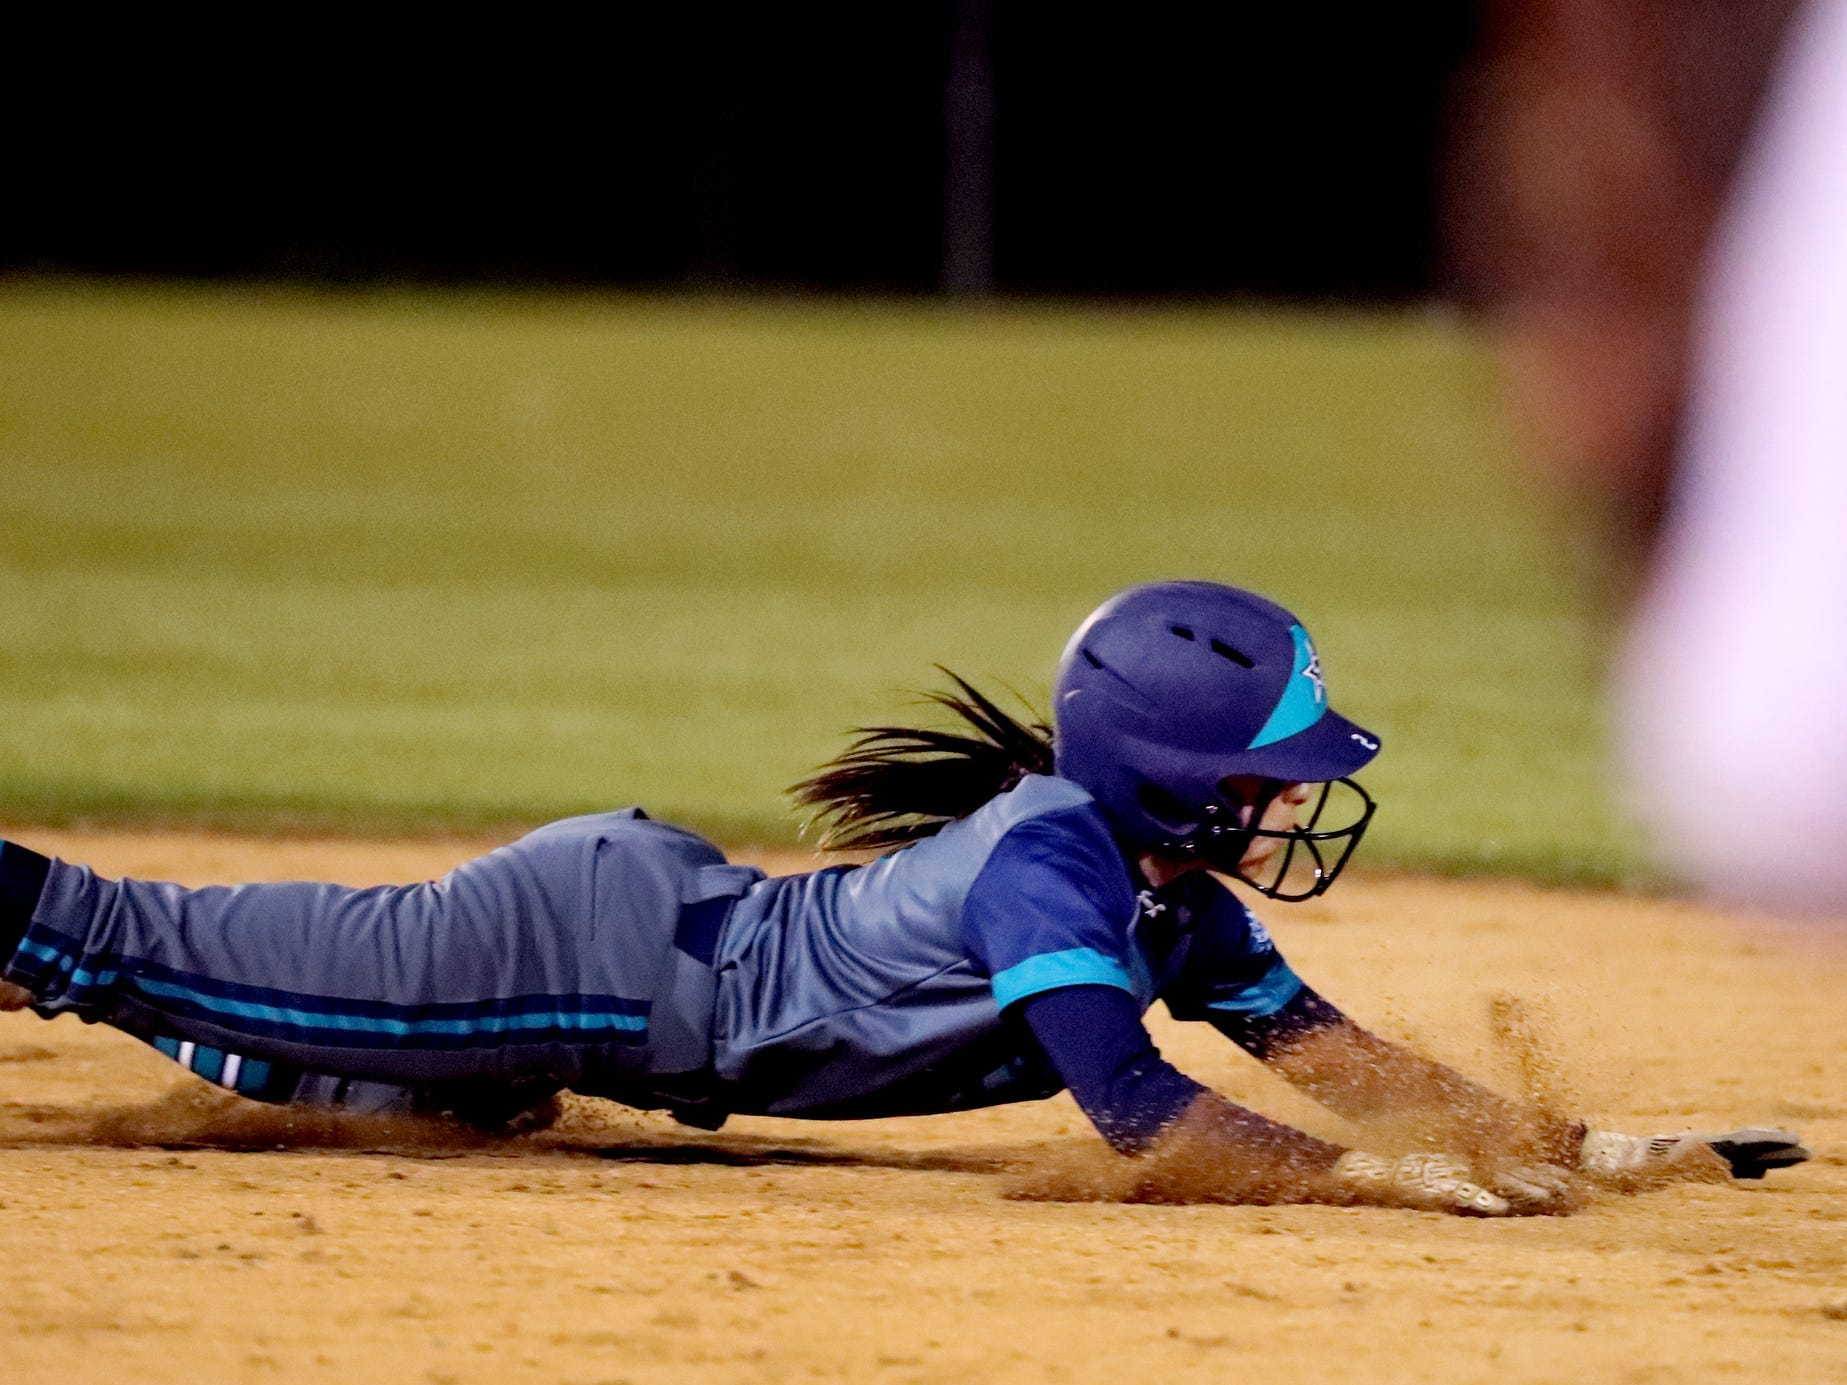 Siegel's Reagan Duran (2) dives back to second base during the game against Blackman, on Monday, March 18, 2019, at Blackman.